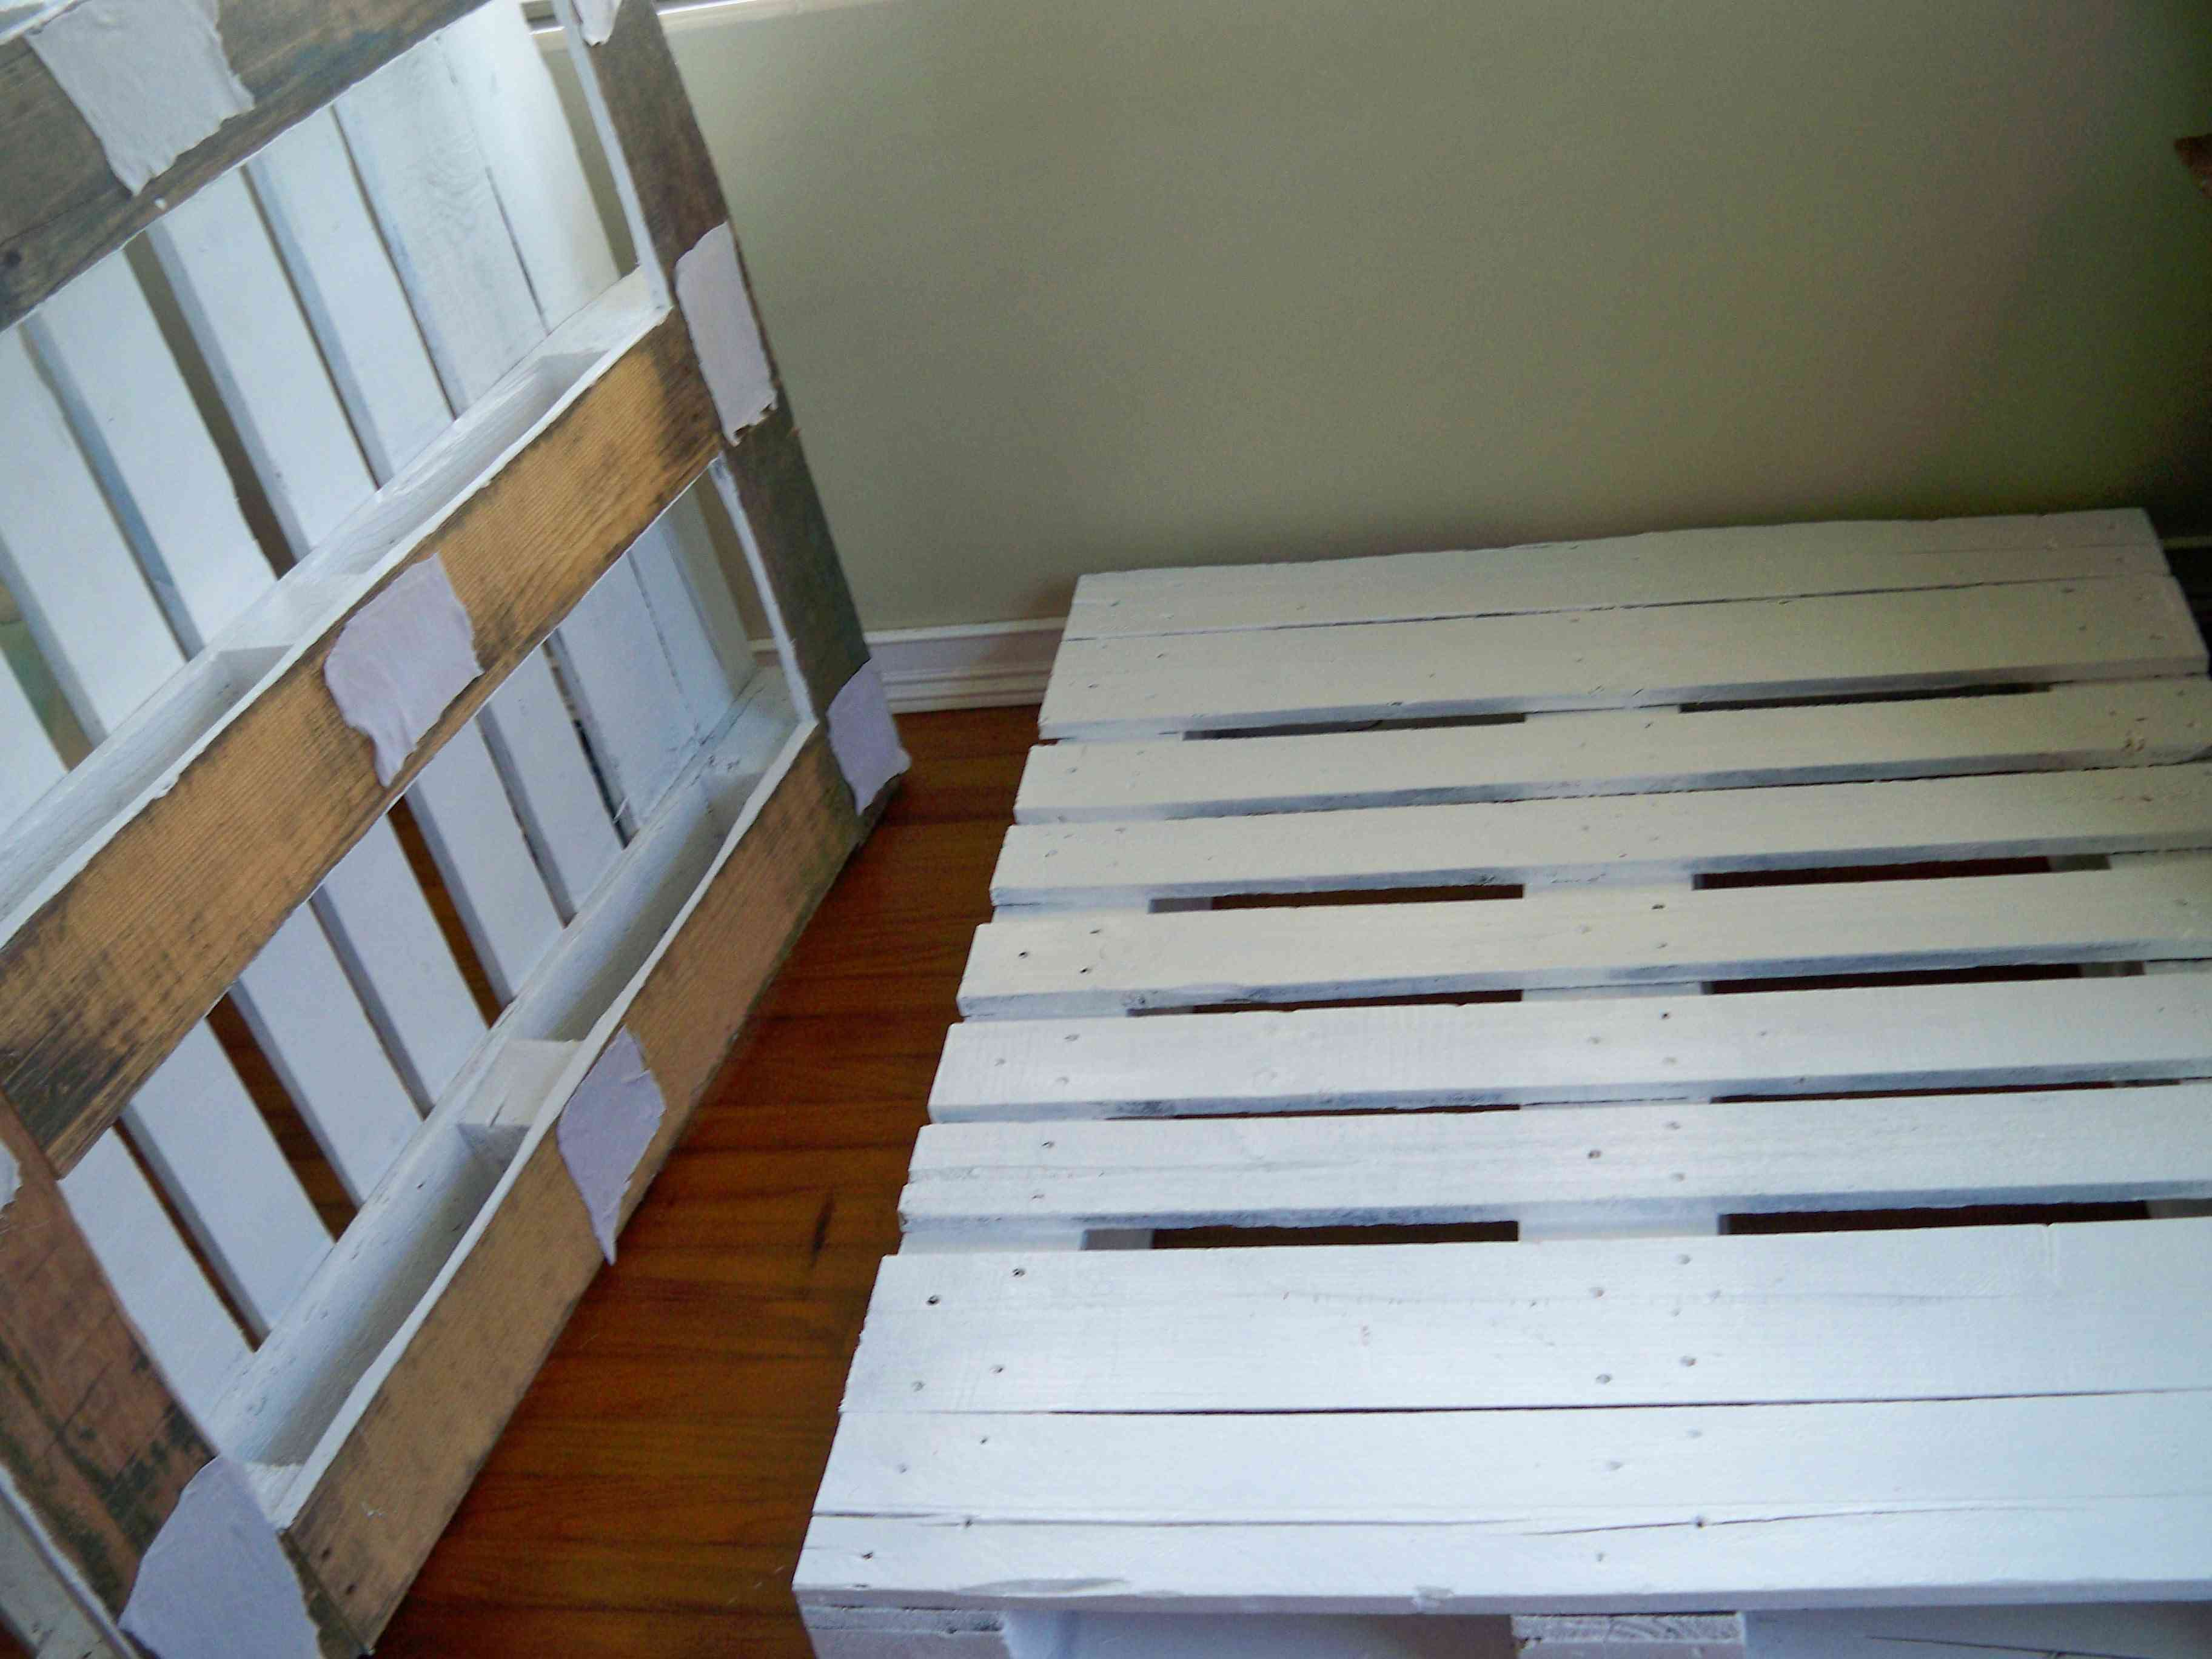 Two painted pallets